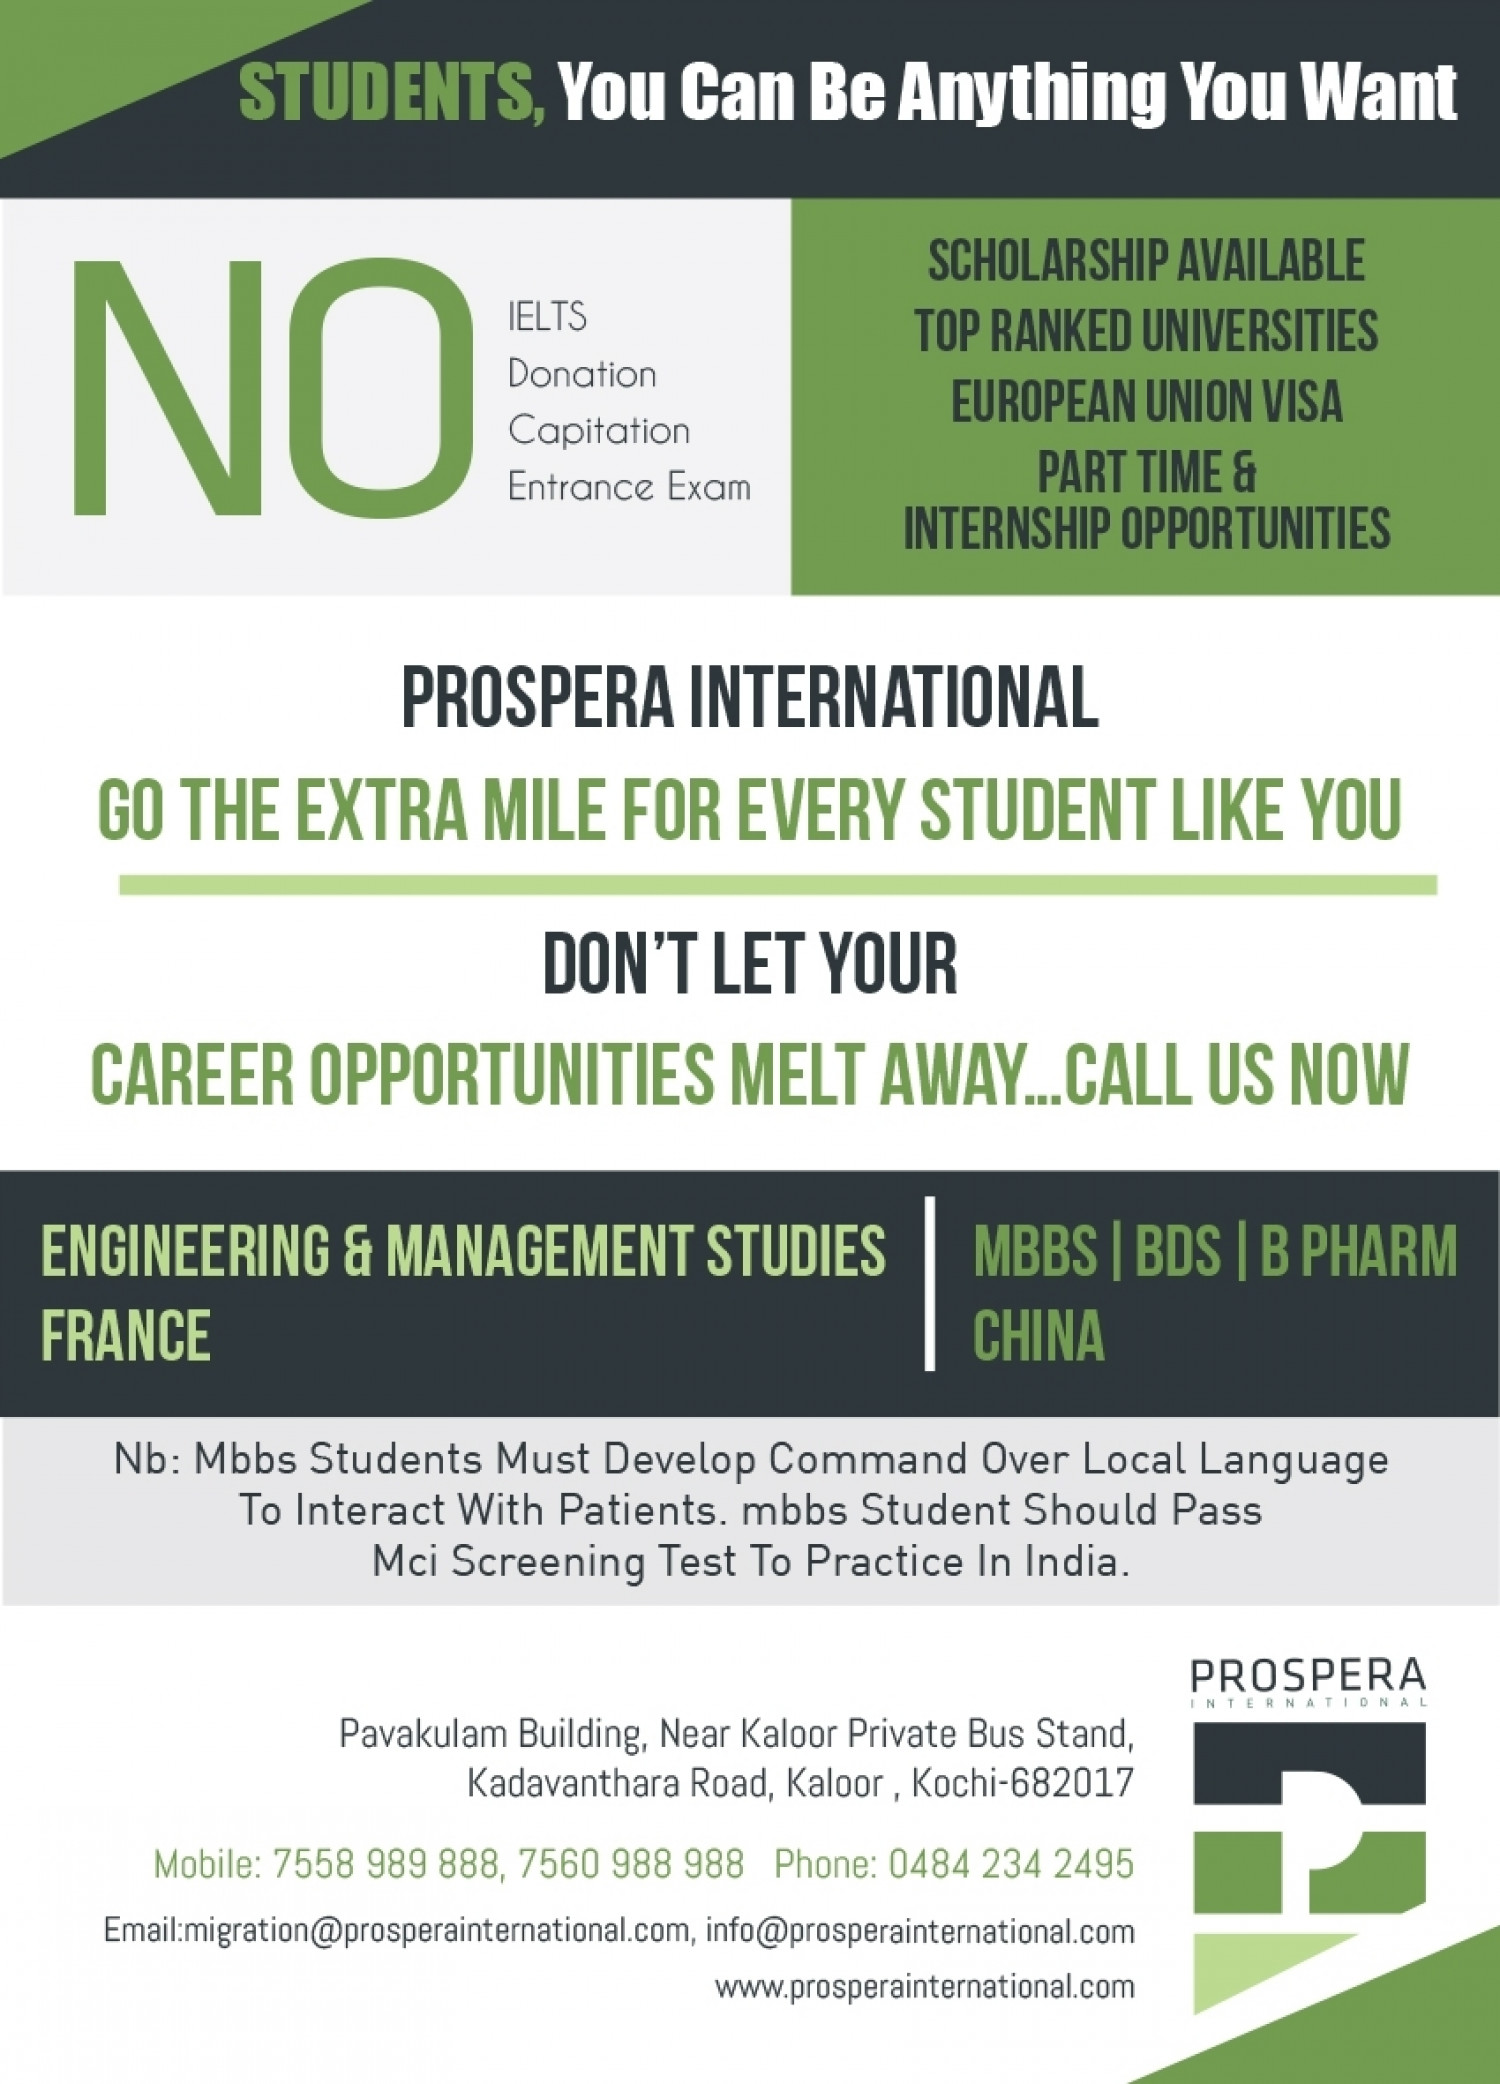 STUDENTS, BECOME ANYONE YOU ASPIRE Infographic